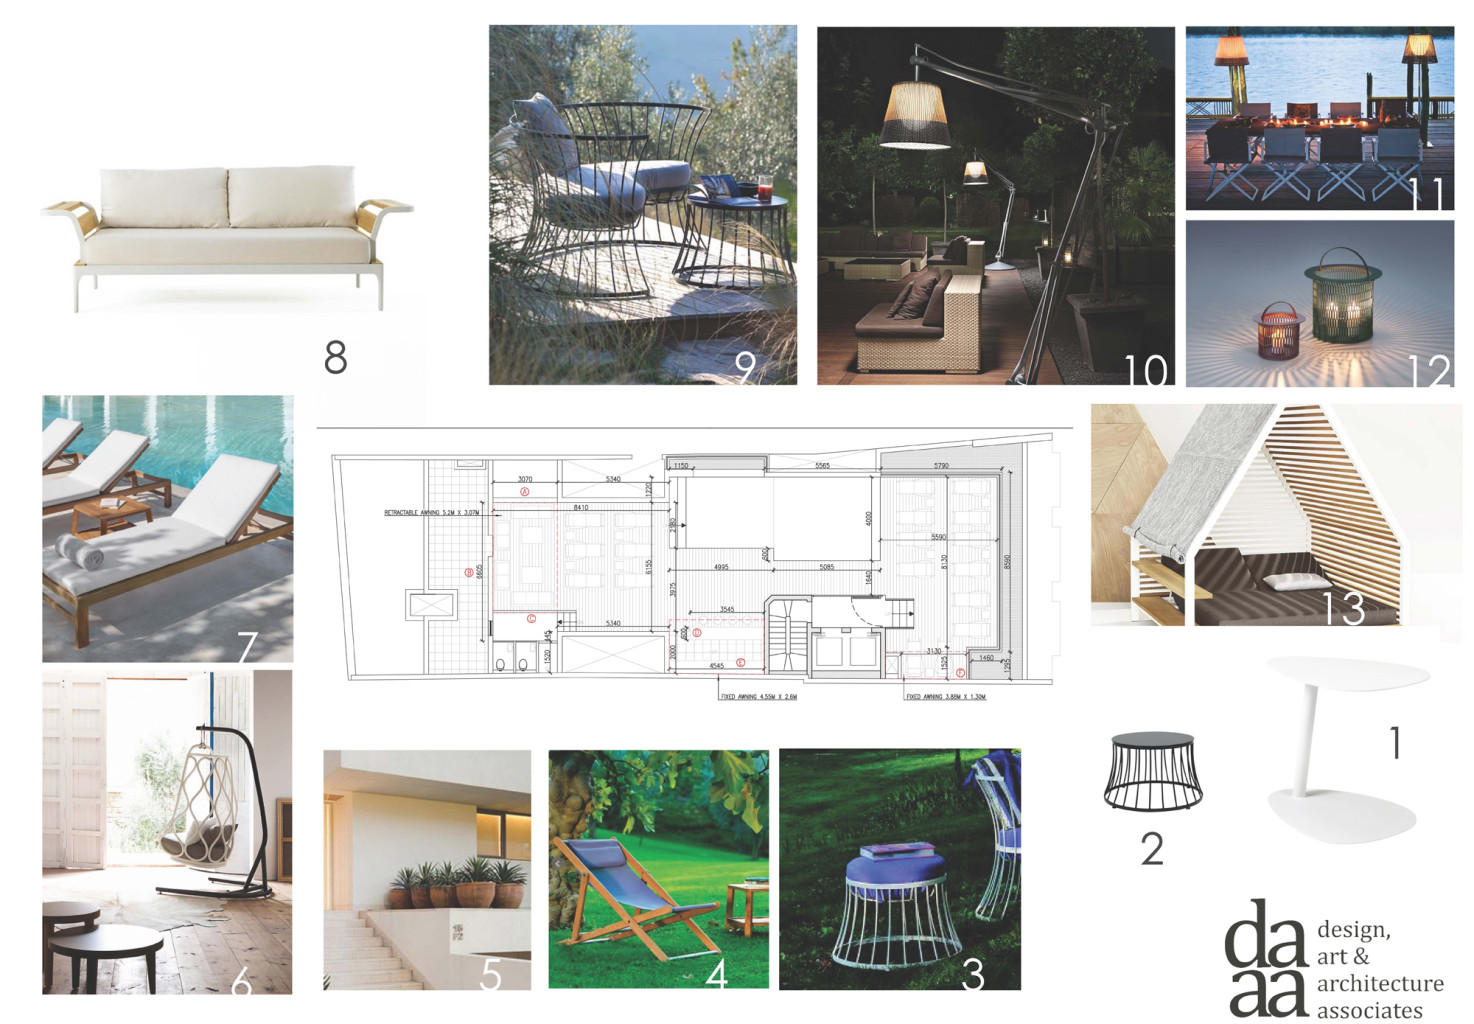 Hotel juliani concept board 1